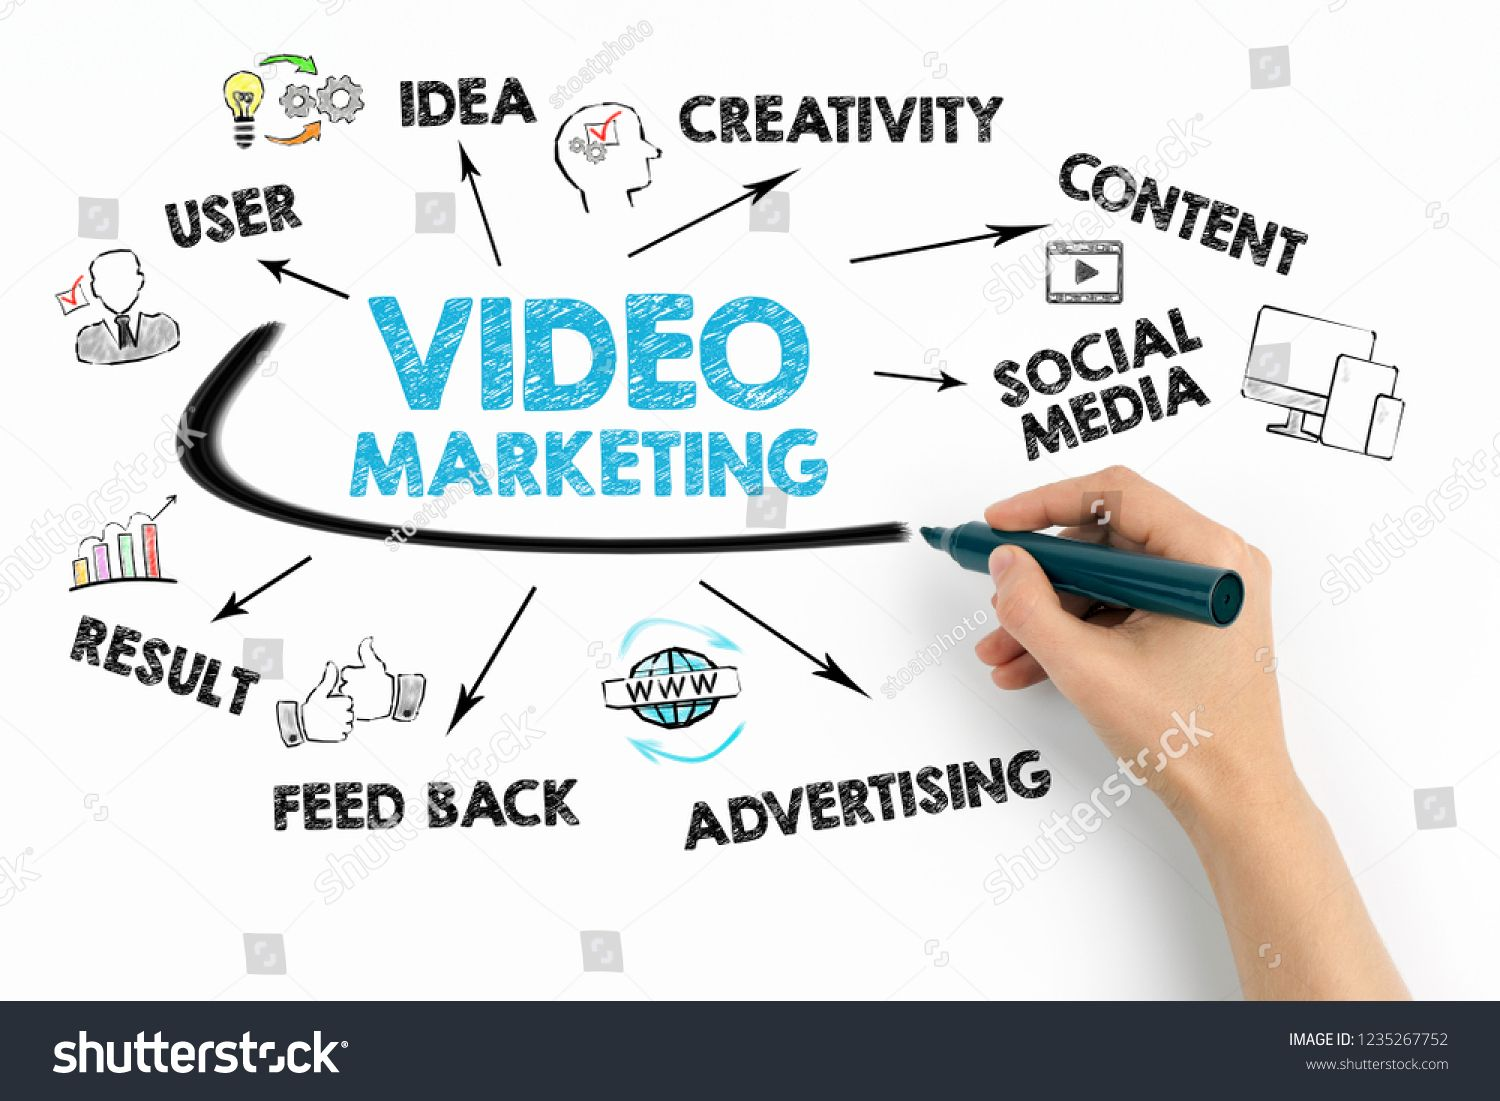 Video Marketing Concept. Chart with keywords and icons on